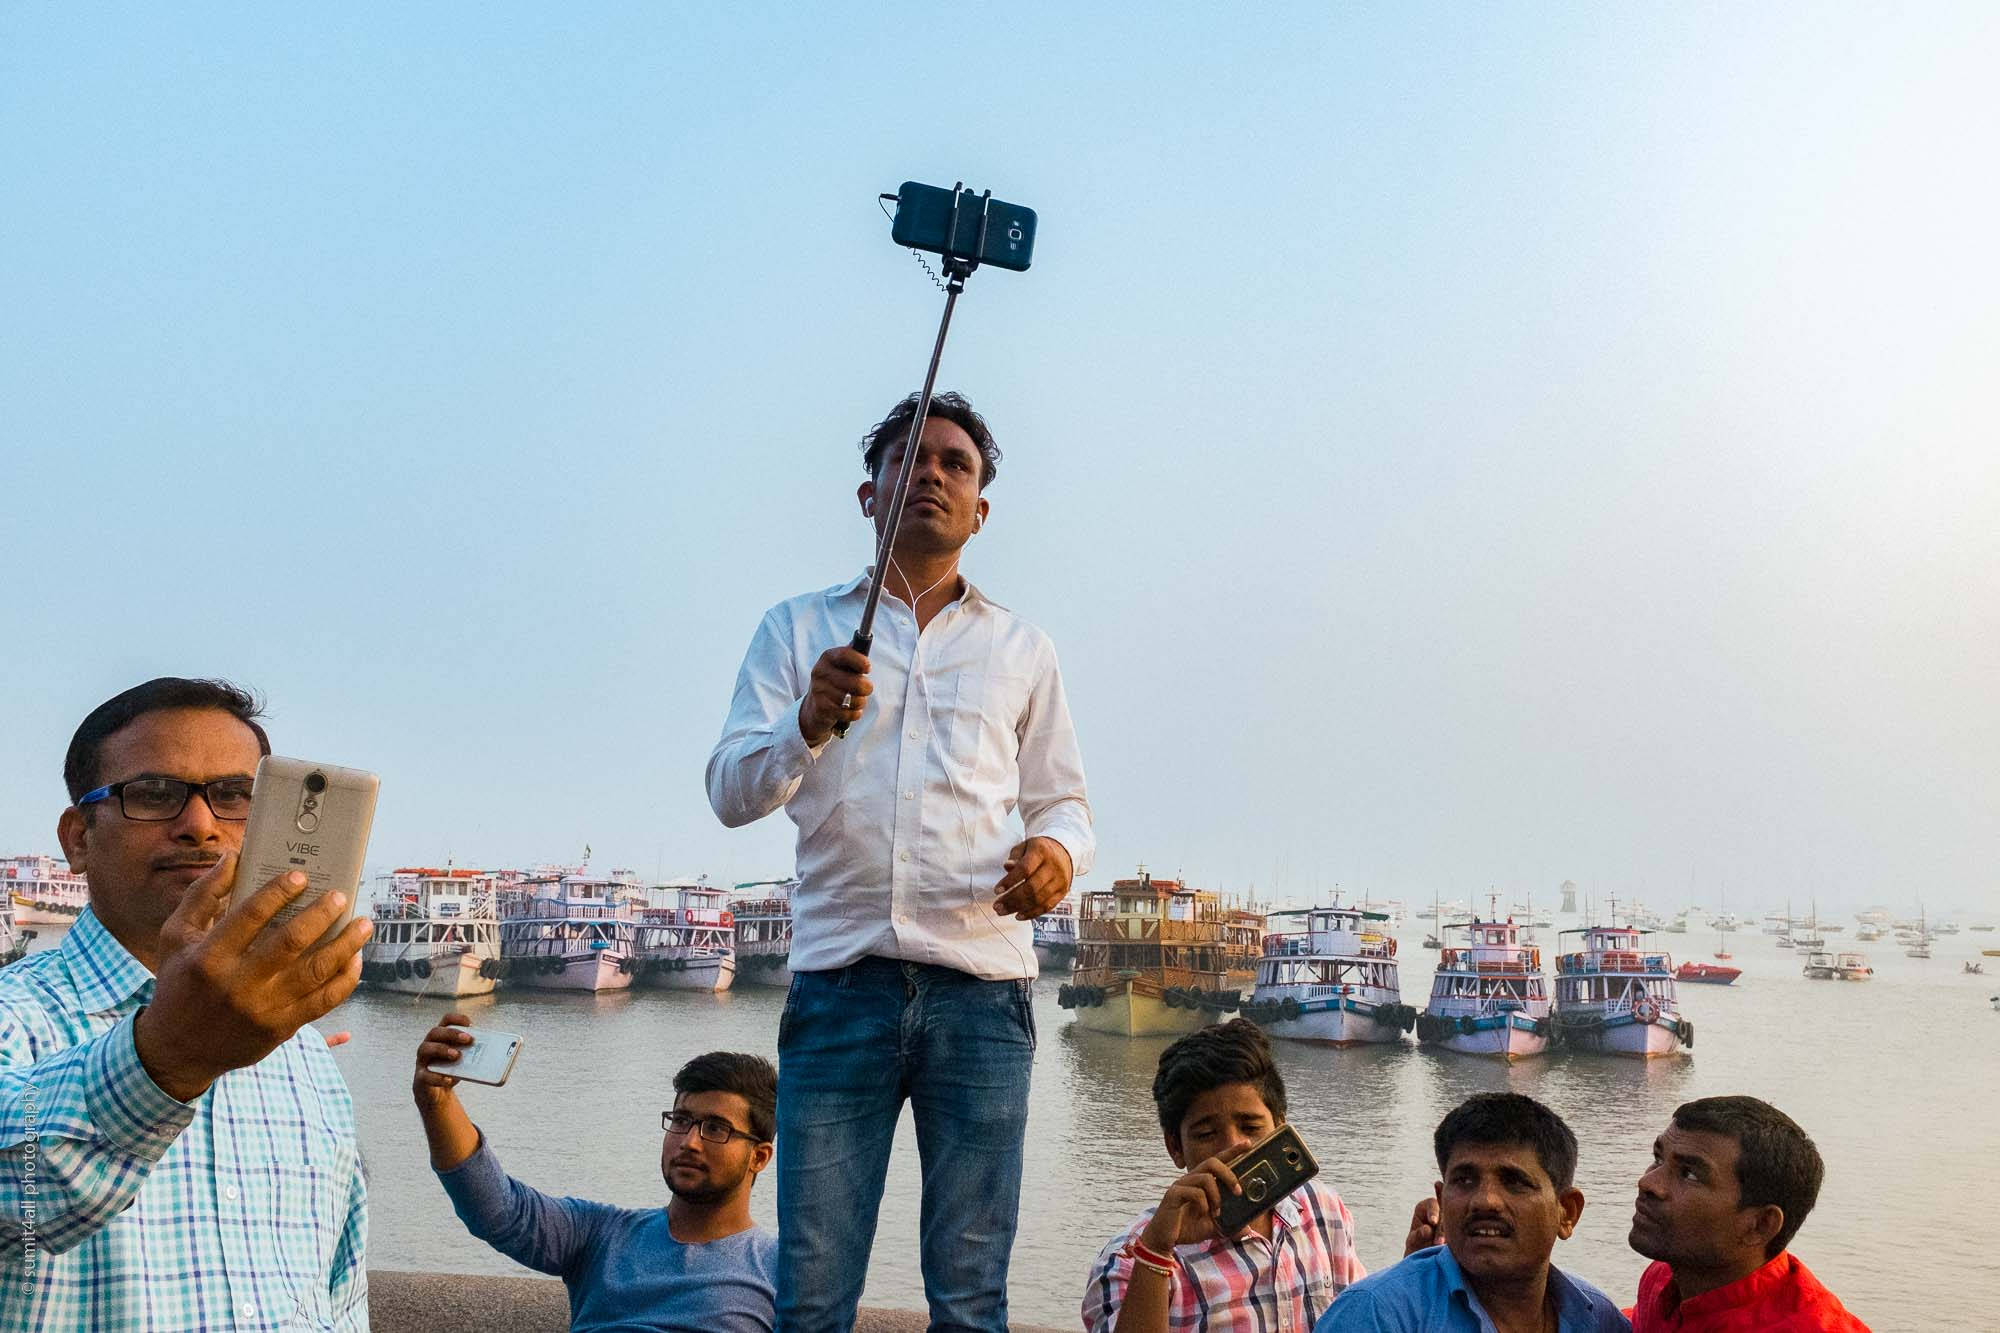 Selfie Mania by the Arabian Sea, Mumbai